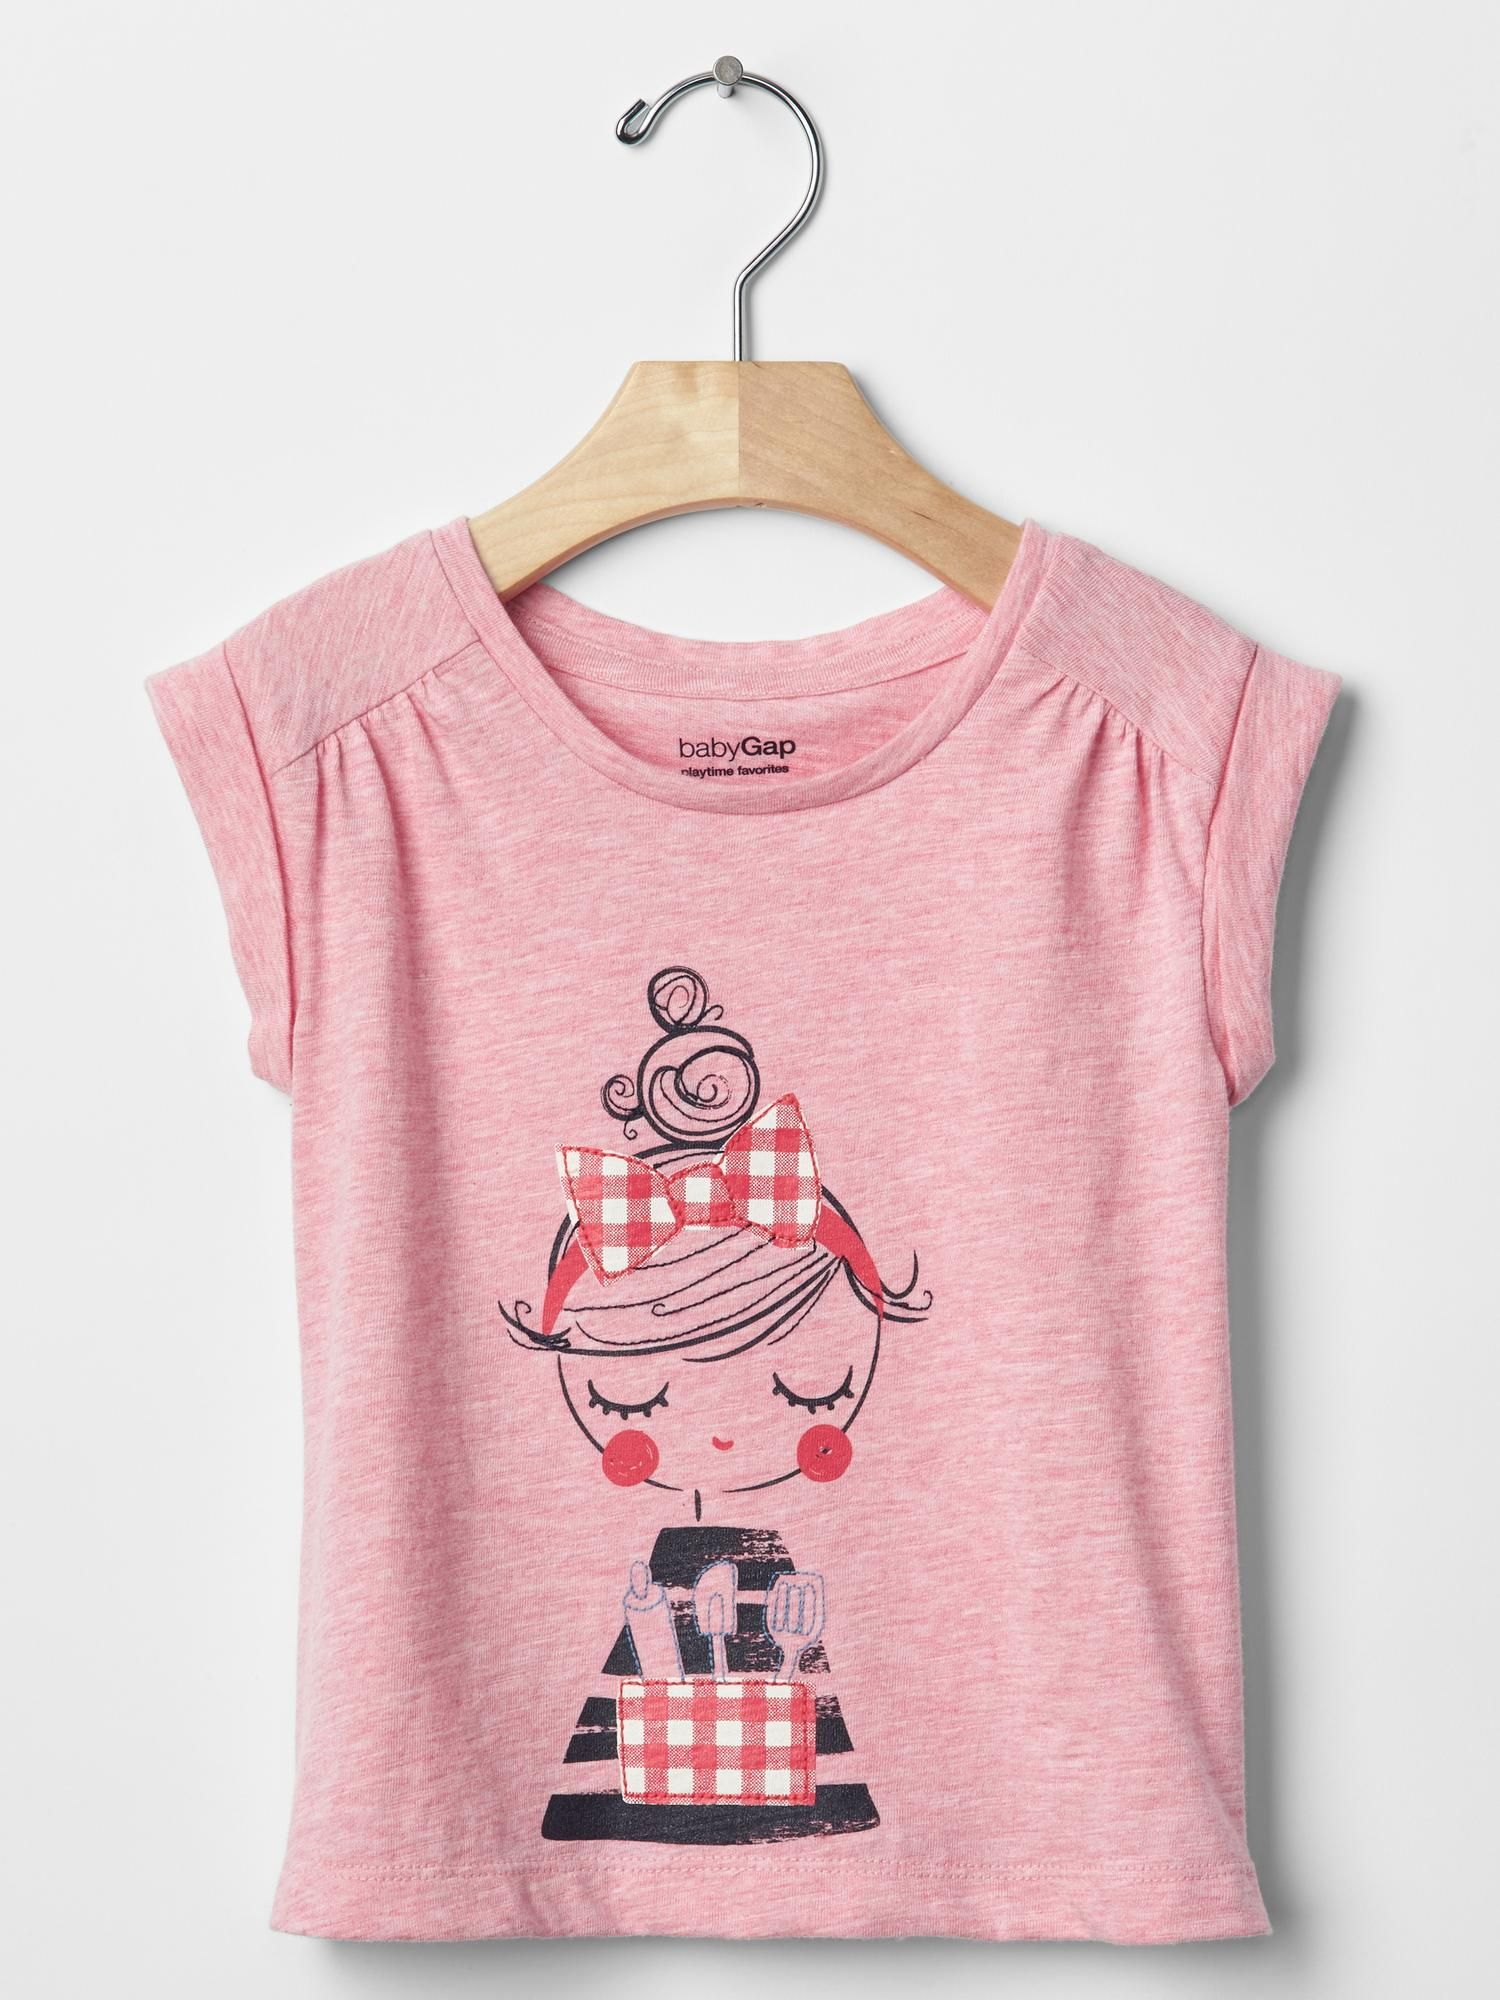 ca61a2956 Embellished graphic shirred tee